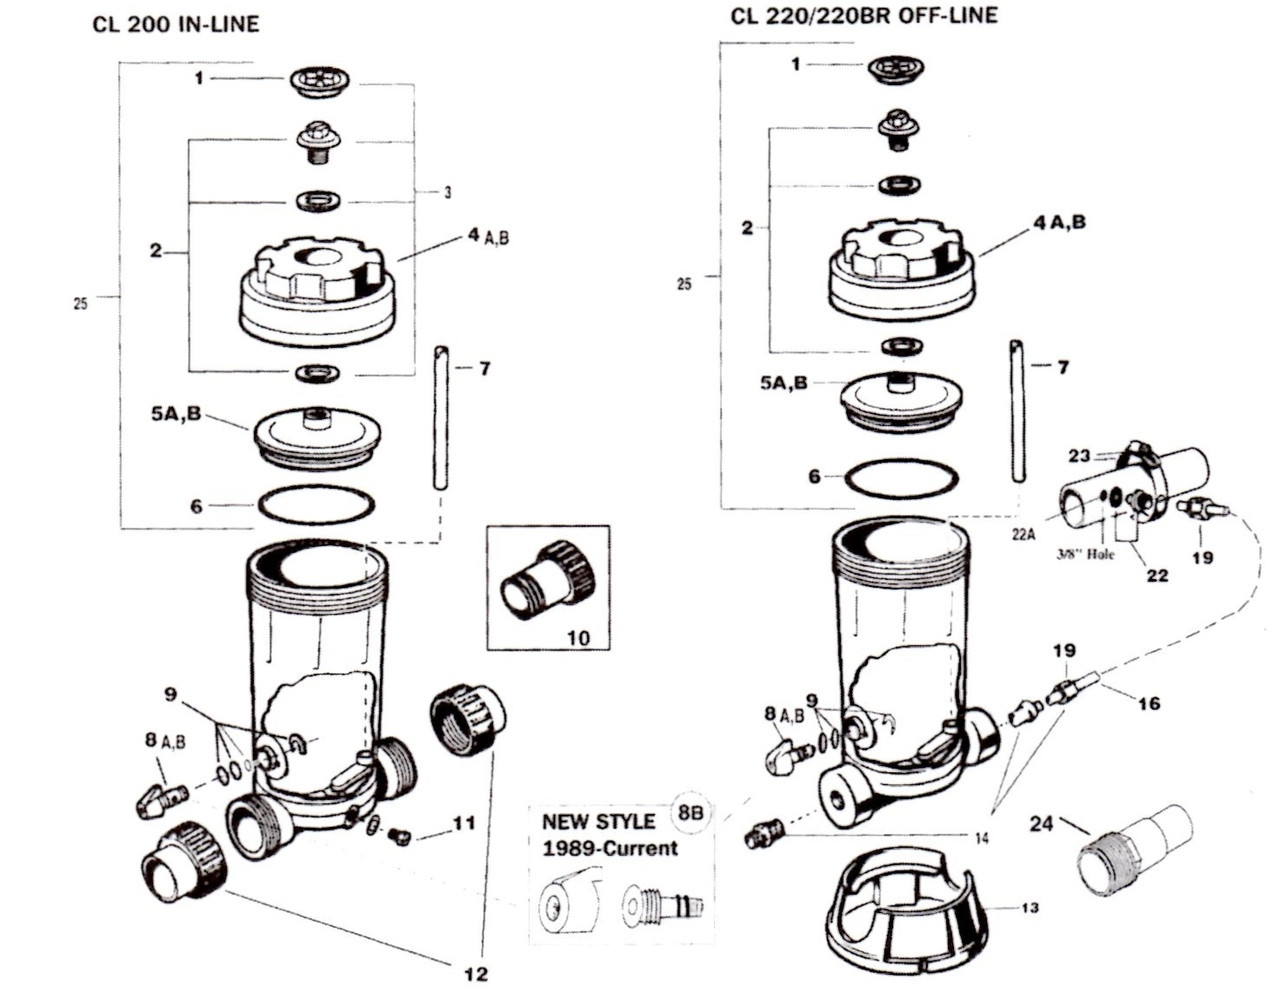 Hayward Chlorinator Wiring Diagram